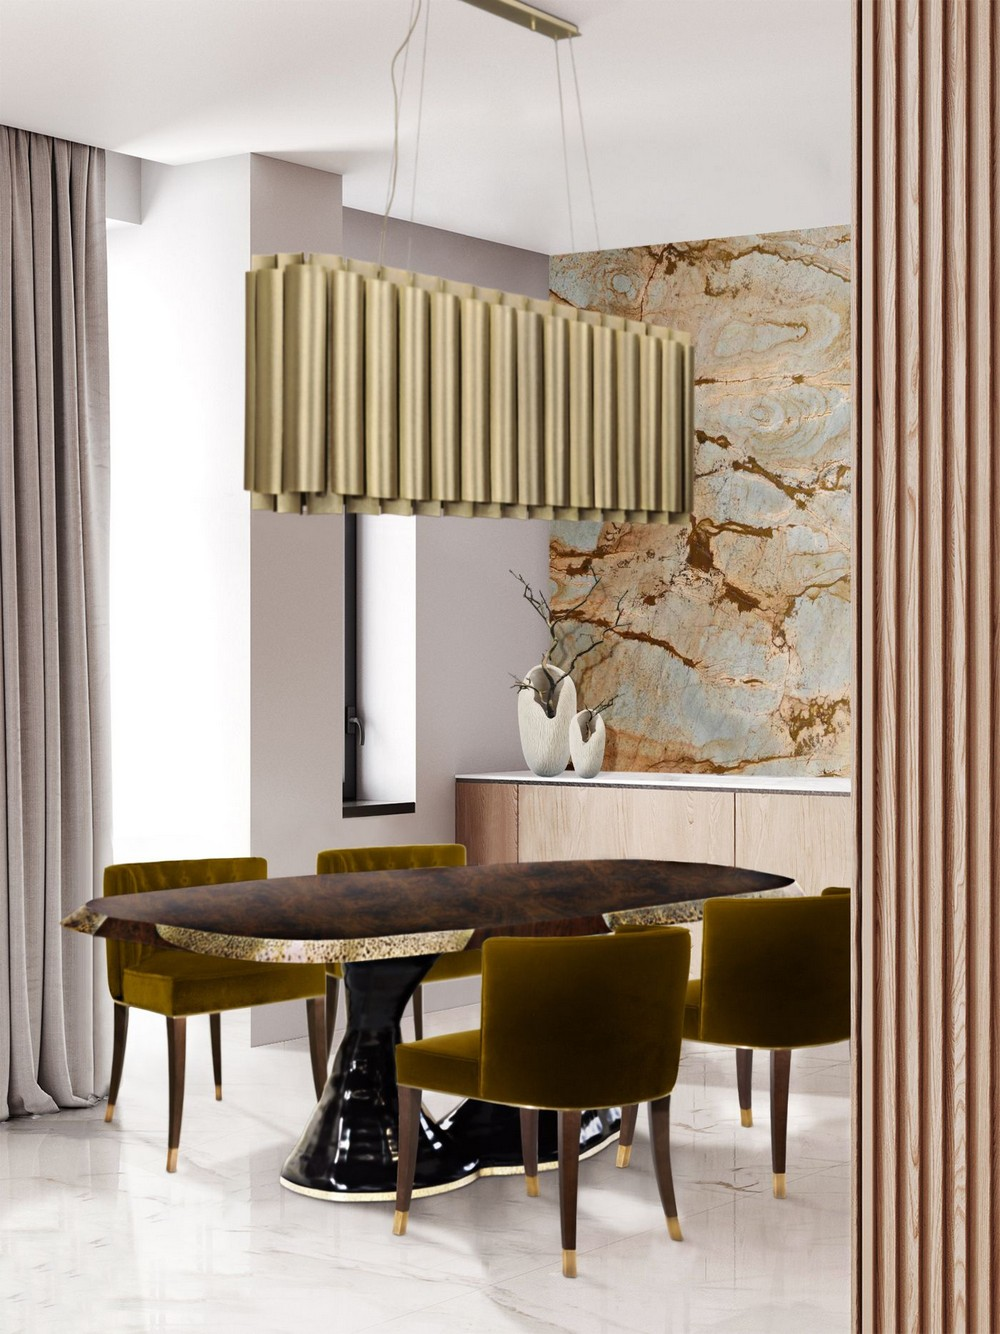 Design That's Barely There: Dining Room Ideas With Nude Tones dining room ideas Design That's Barely There: Dining Room Ideas With Nude Tones VNJ8Koaw